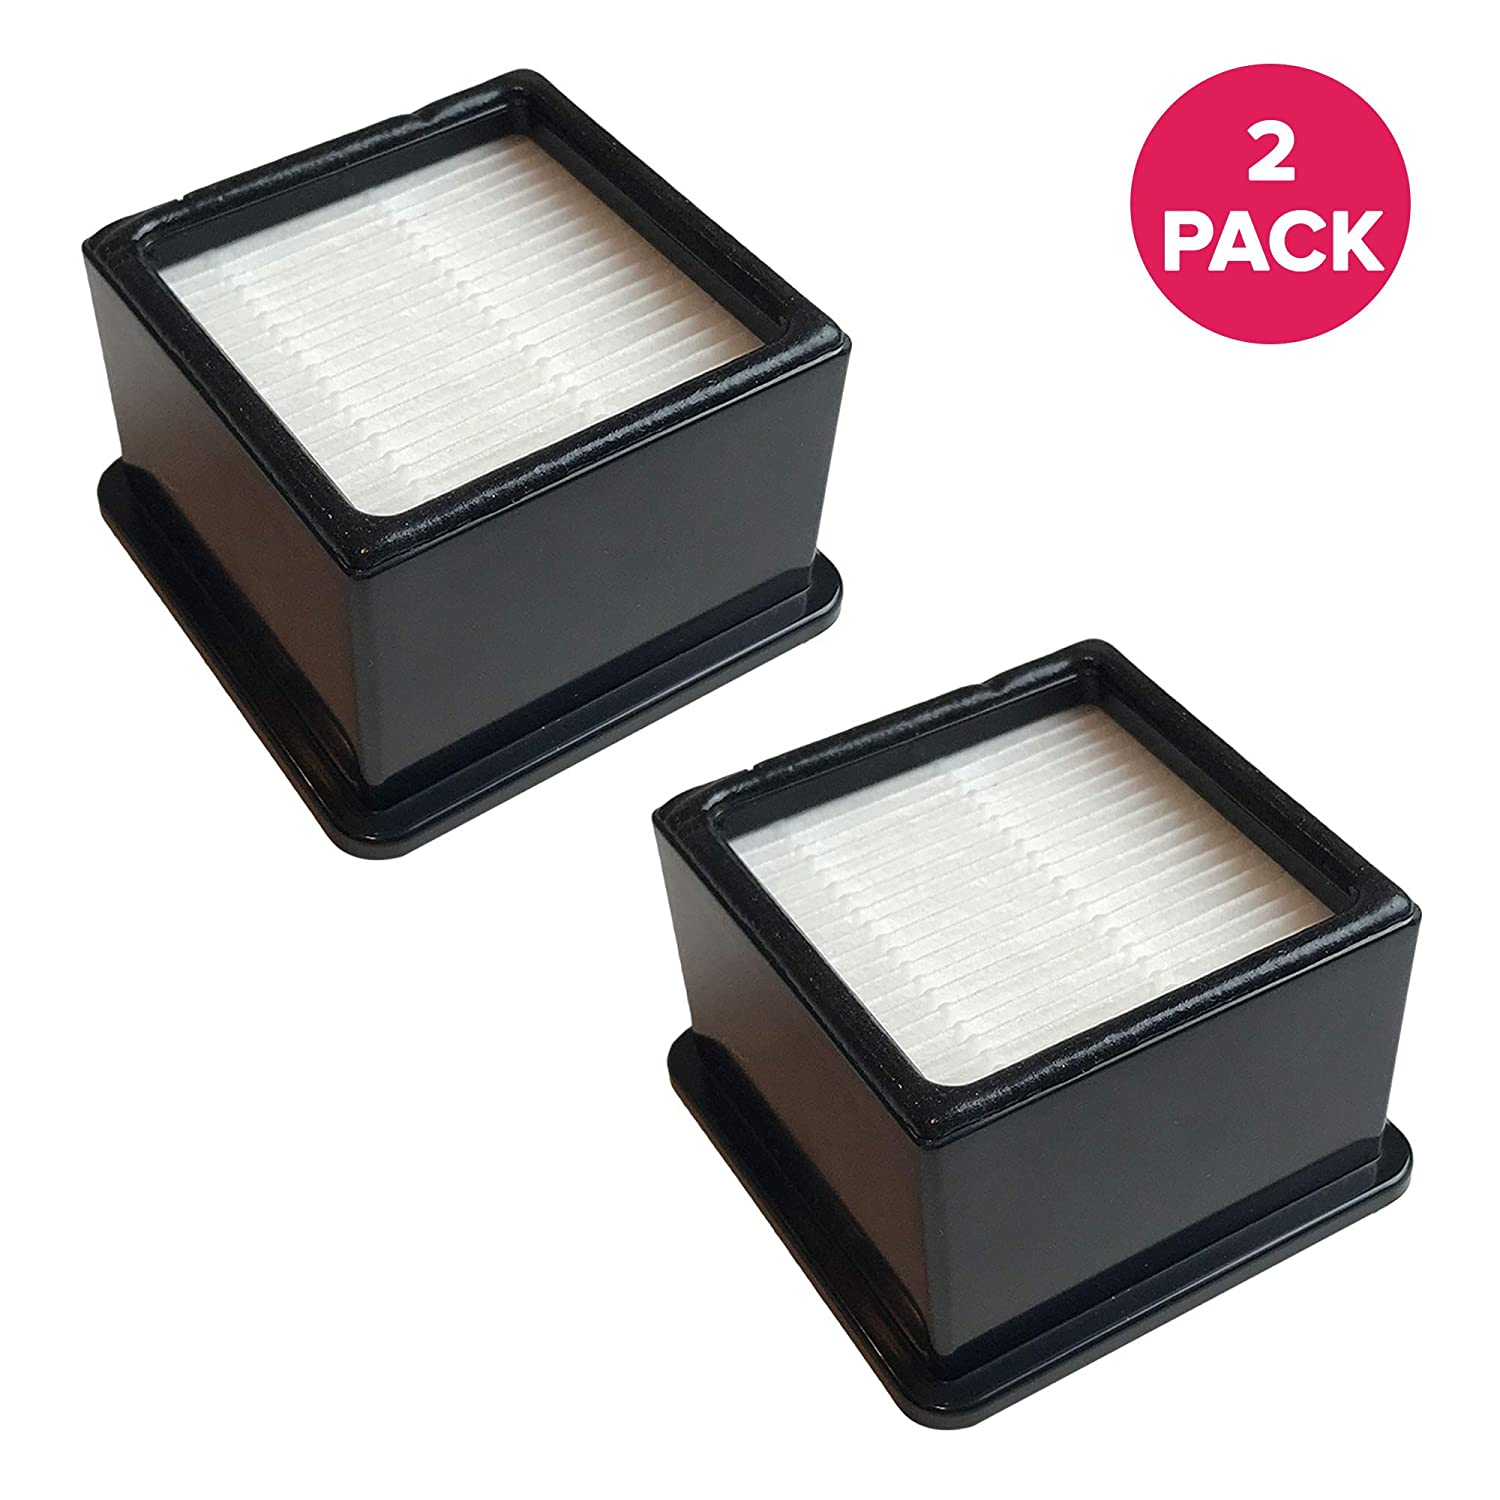 Crucial Vacuum Replacement Vacuum Filters - Compatible with Dirt Devil F-43 Easy Lite Cyclonic Bagless Foam Vacuum Cleaner Filter - HEPA Style - Replace Parts #F43 2PY1105000 1PY1106000 (2 Pack)